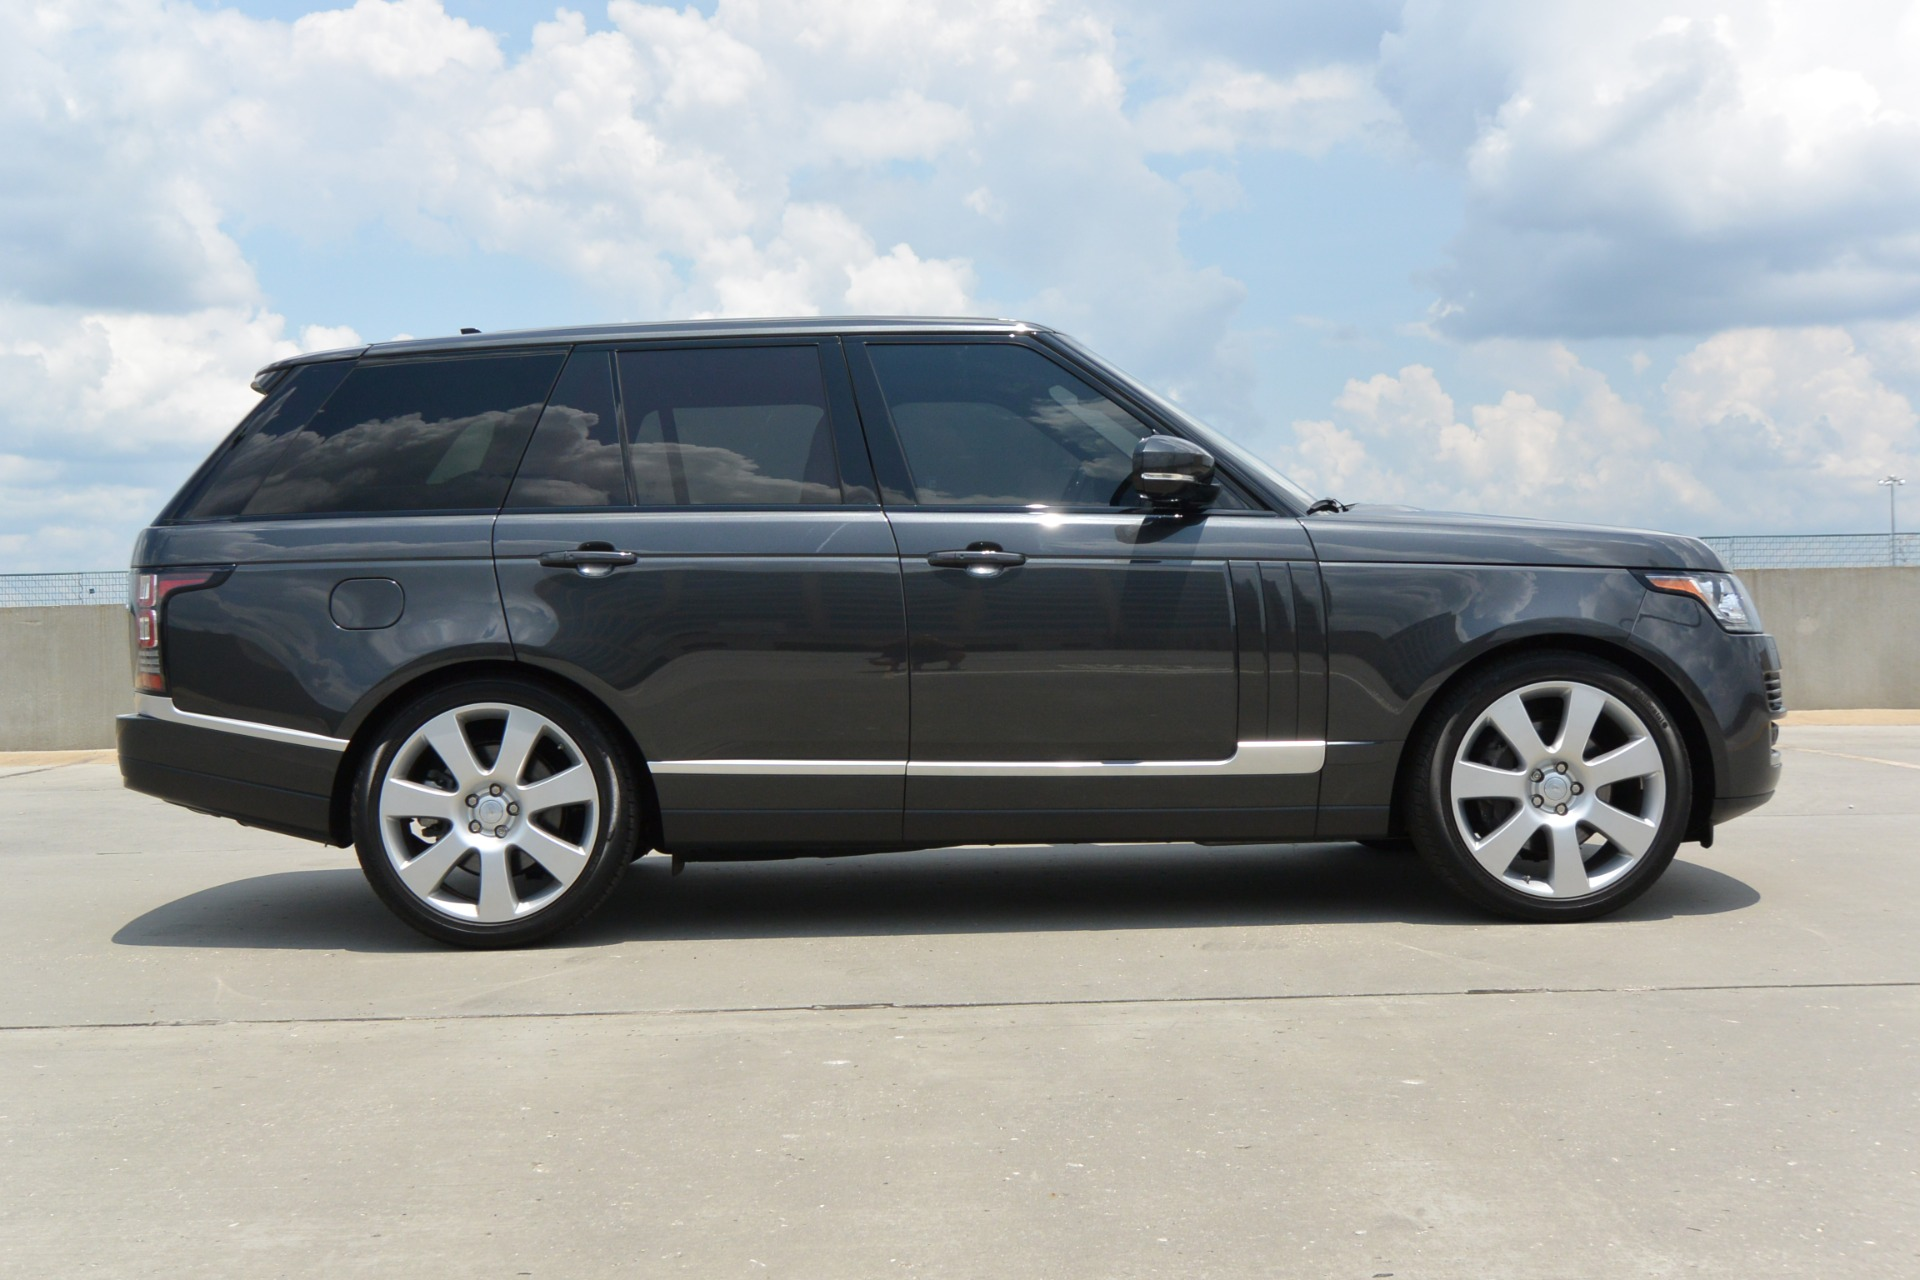 Used-2016-Land-Rover-Range-Rover-Supercharged-for-